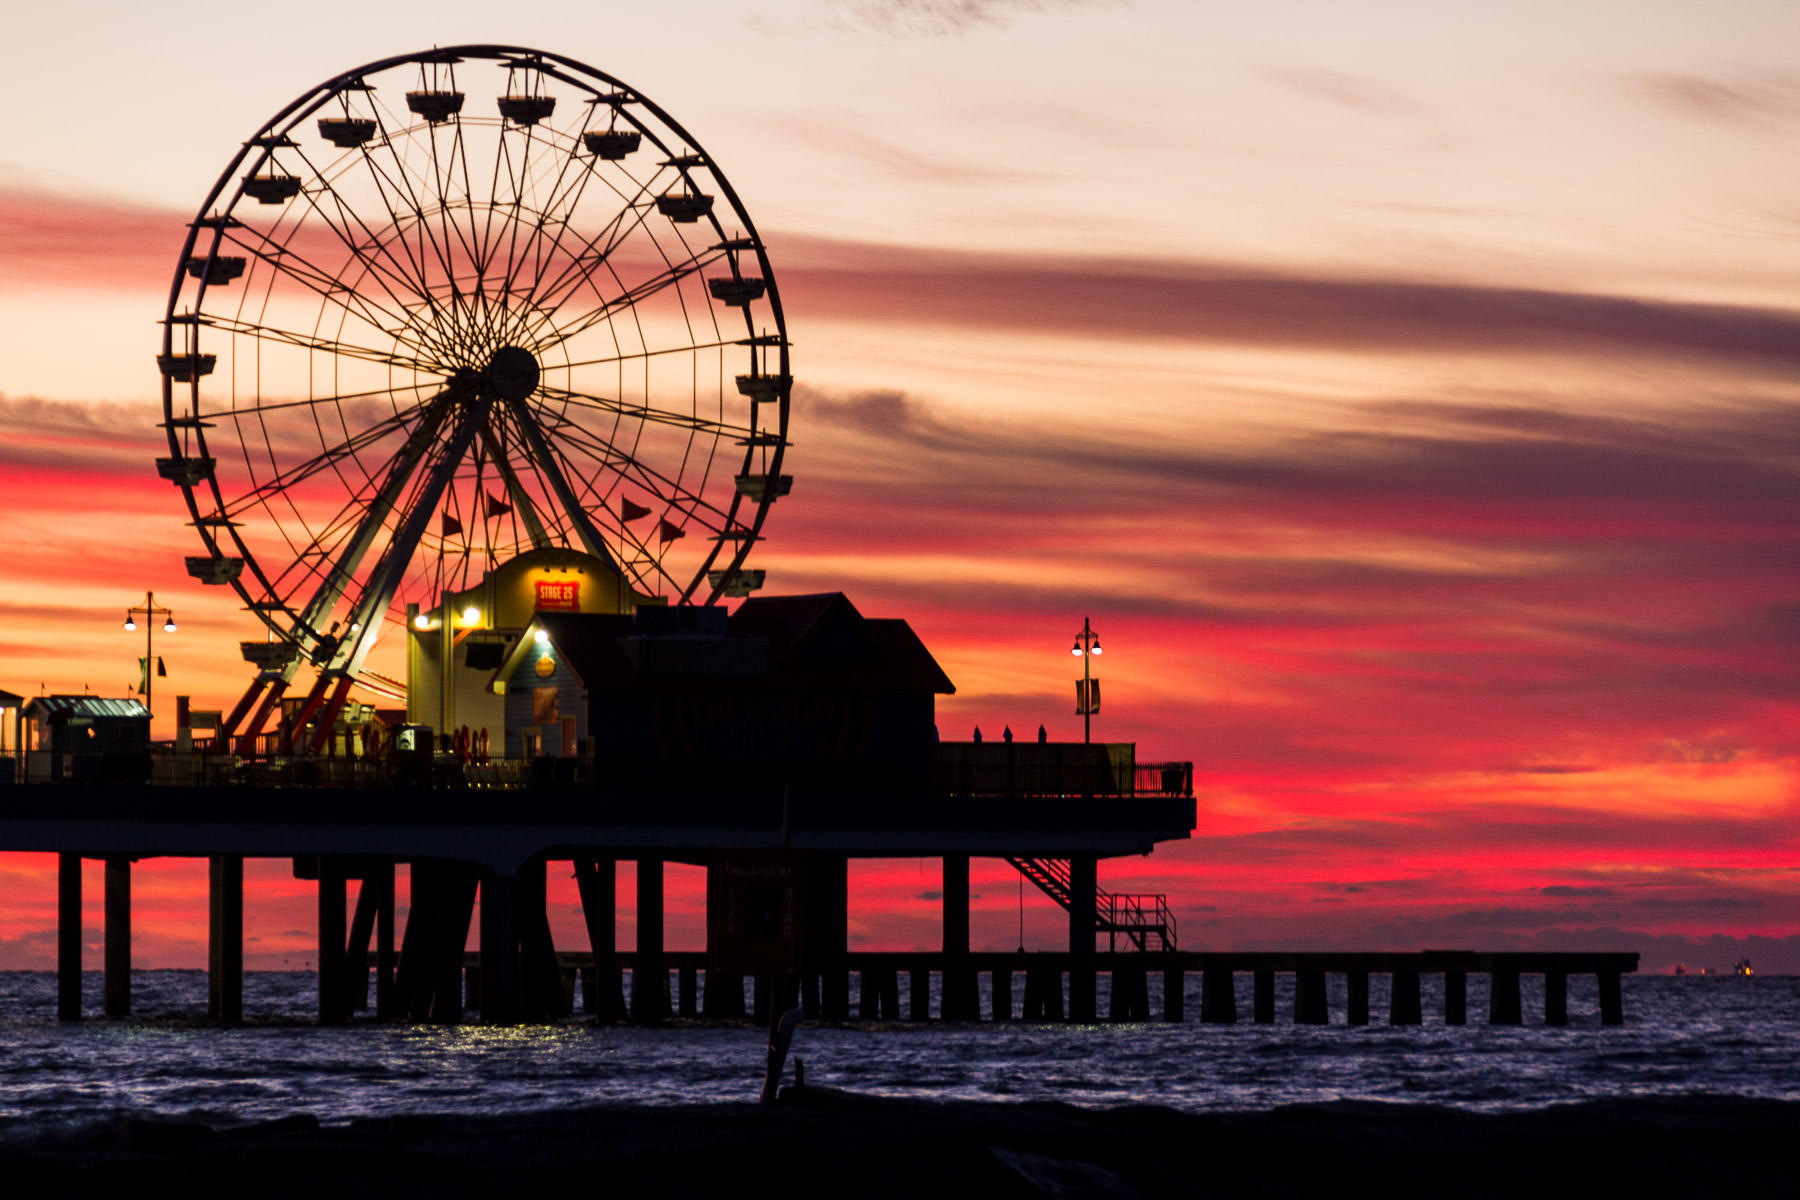 The light of the rising sun silhouettes the Historic Galveston Pleasure Pier as day breaks over the Gulf of Mexico.